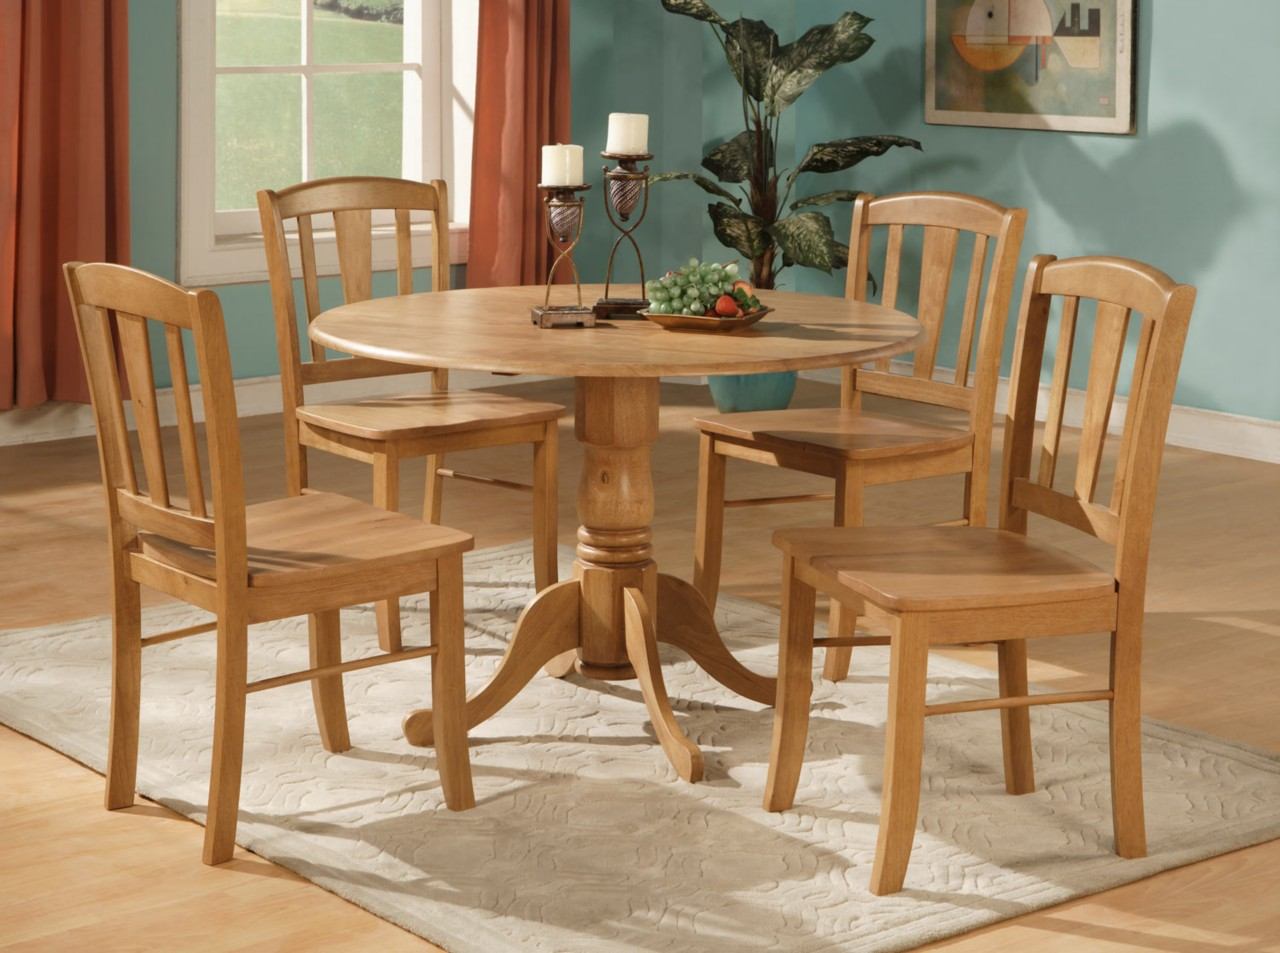 5pc round dinette kitchen dining set table and 4 chairs ebay for Kitchen dining sets